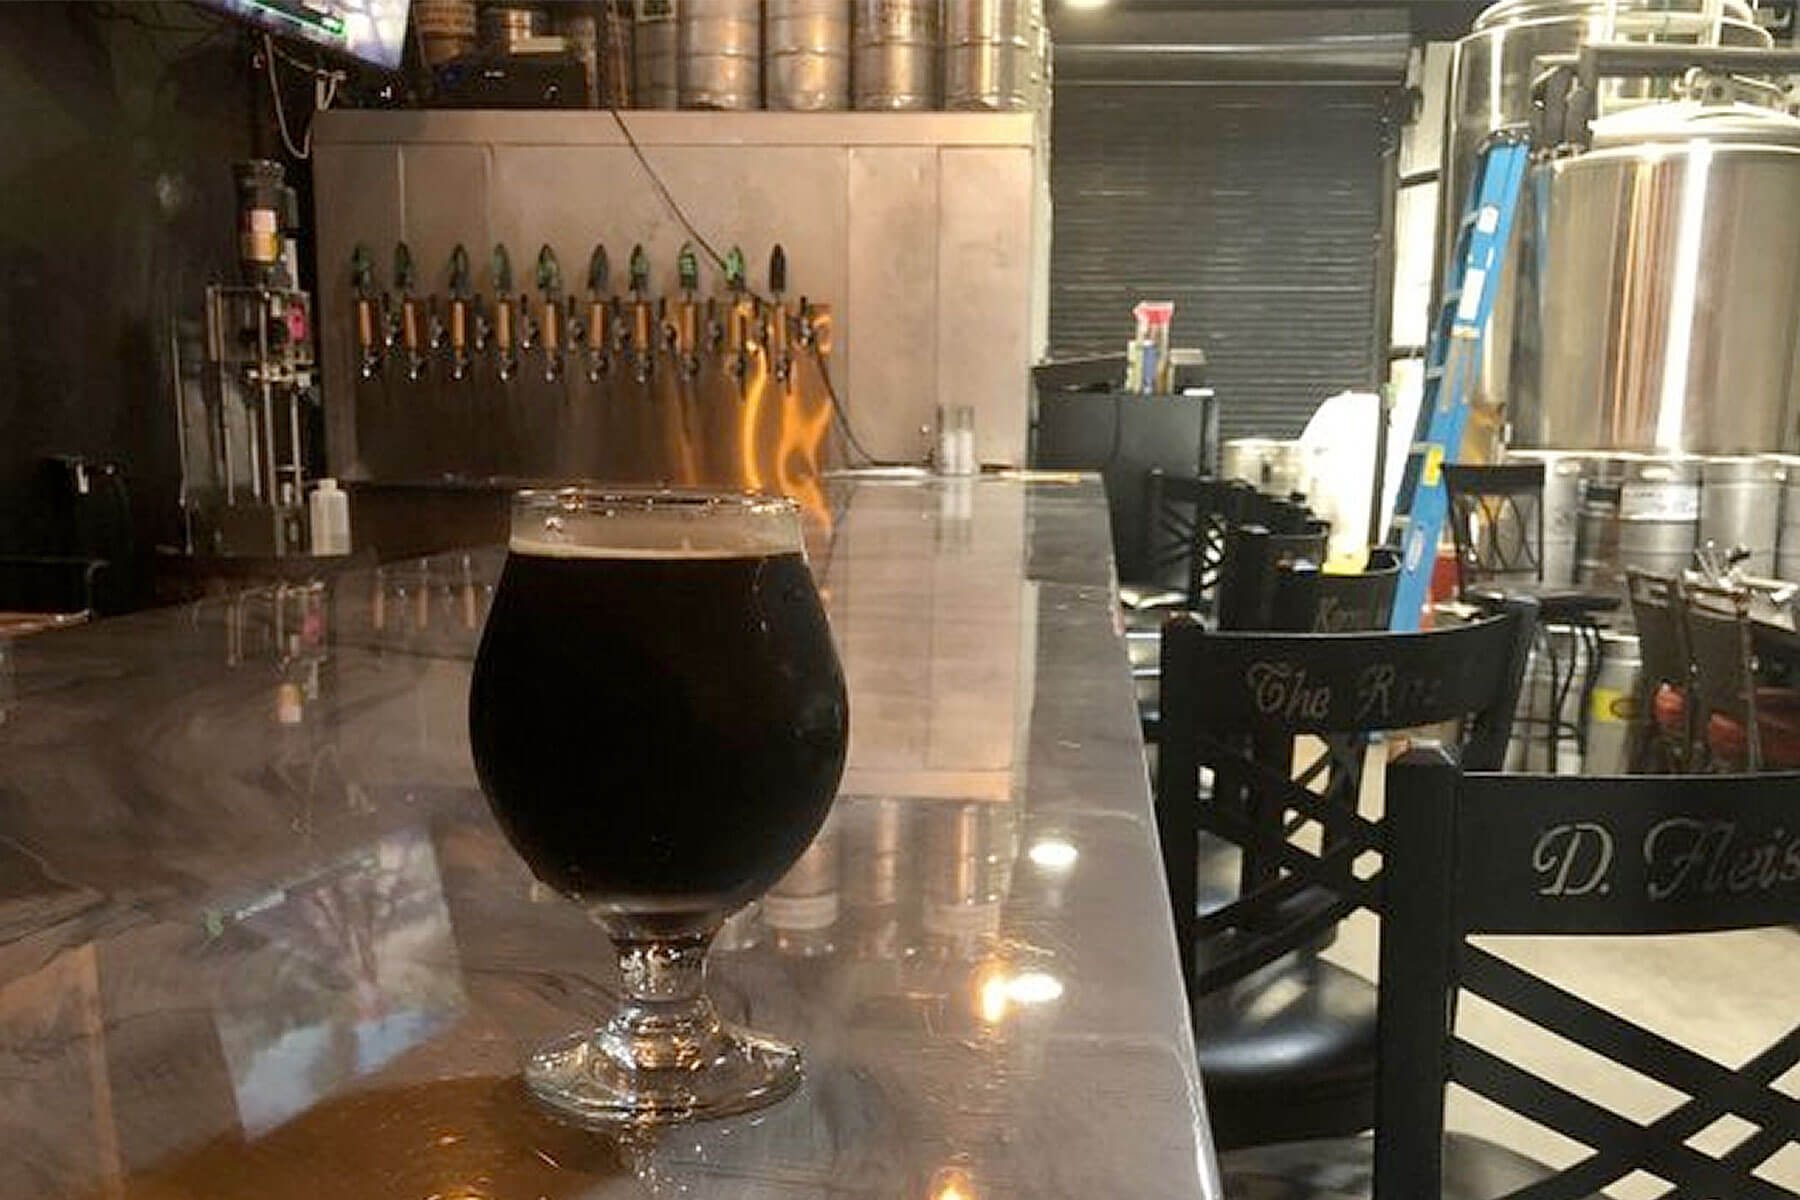 Inside the taproom at Black Flamingo Brewing Company in Pompano Beach, Florida